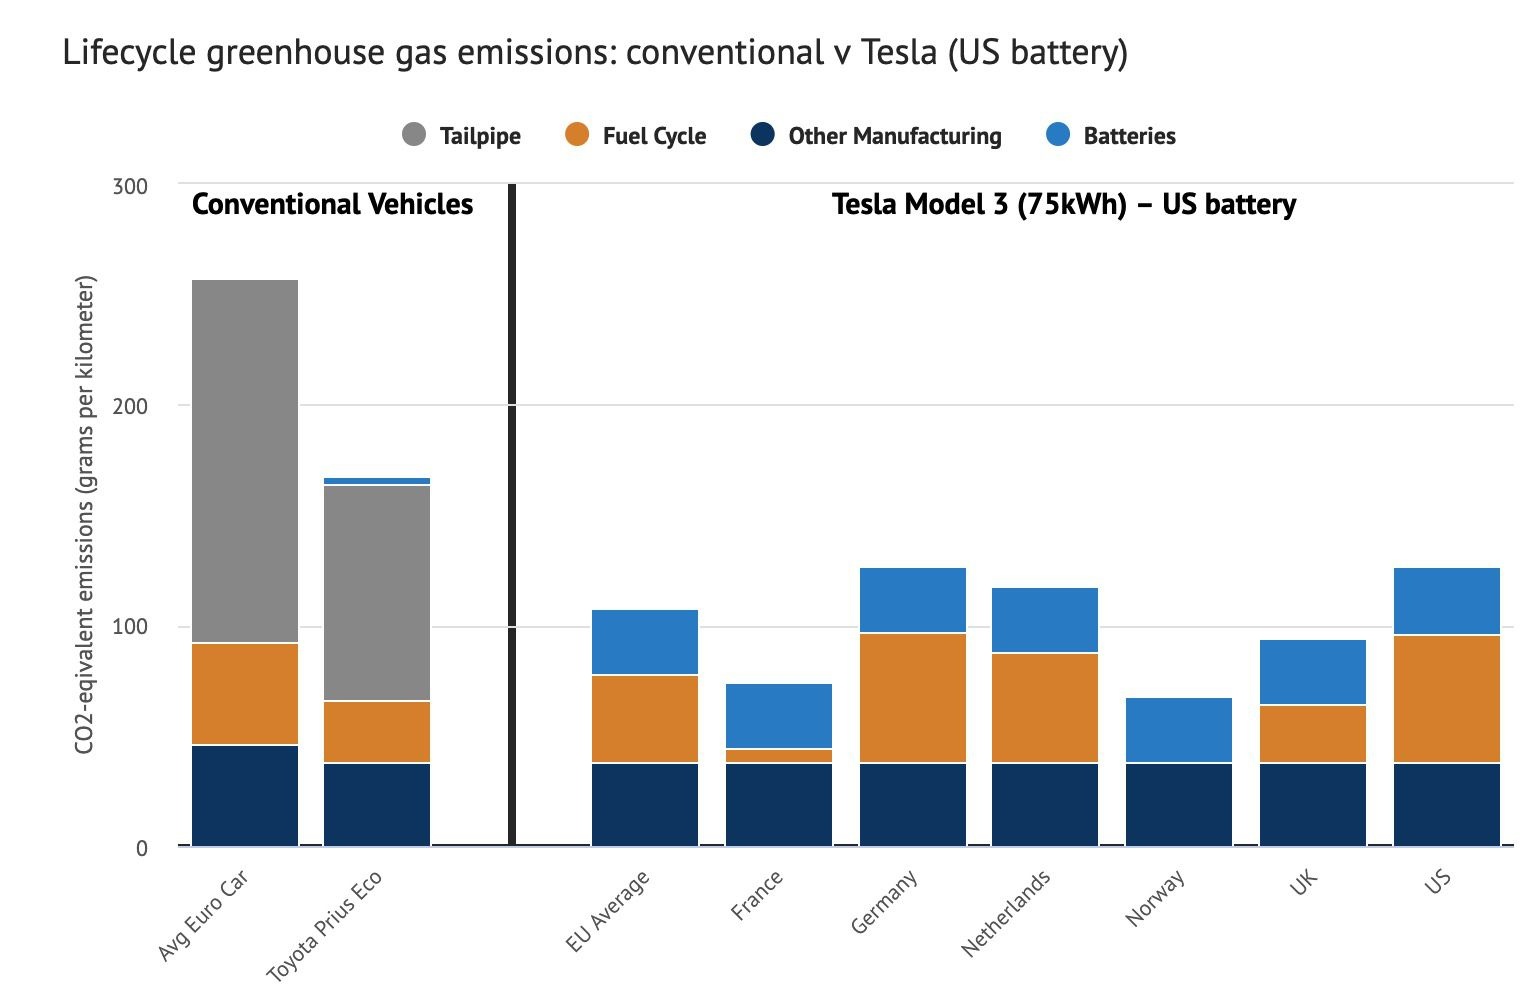 Lifecycle greenhouse gas emissions for conventional and electric vehicles (by country) in grammes CO2-equivalent per kilometre,